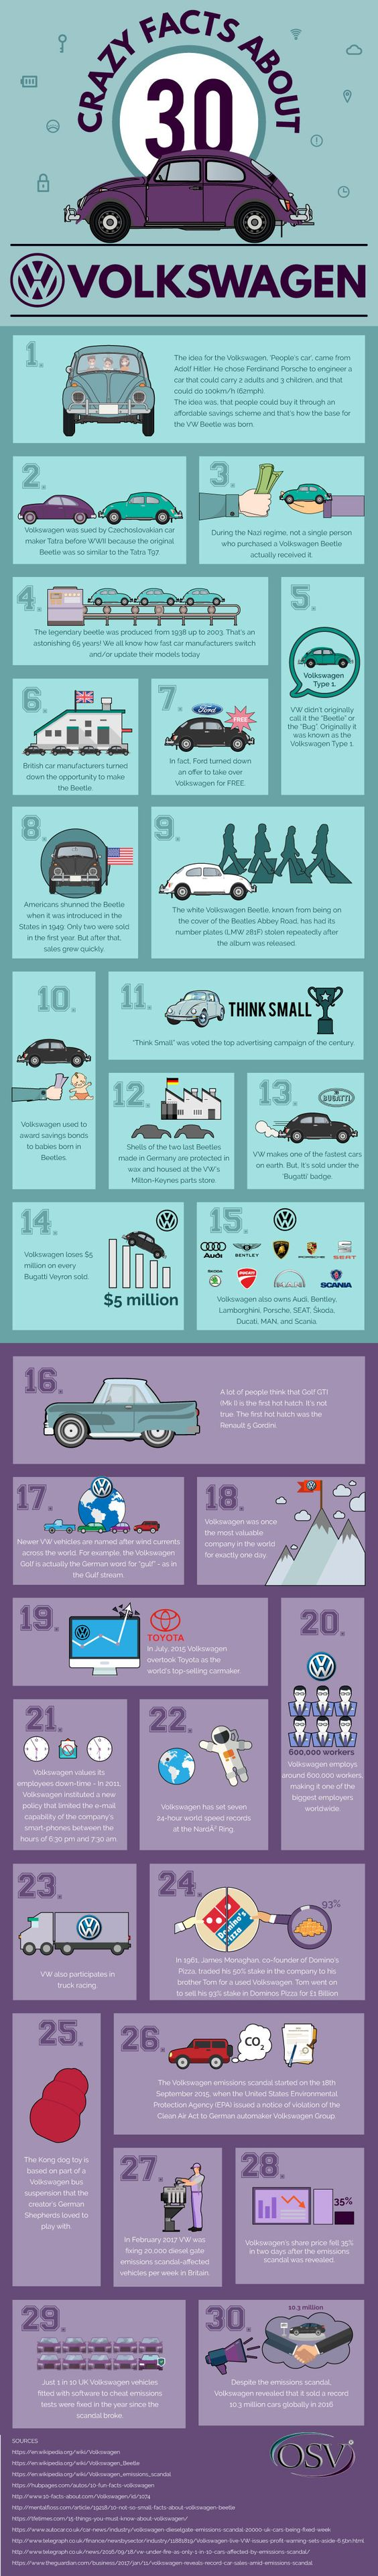 VW 30 facts